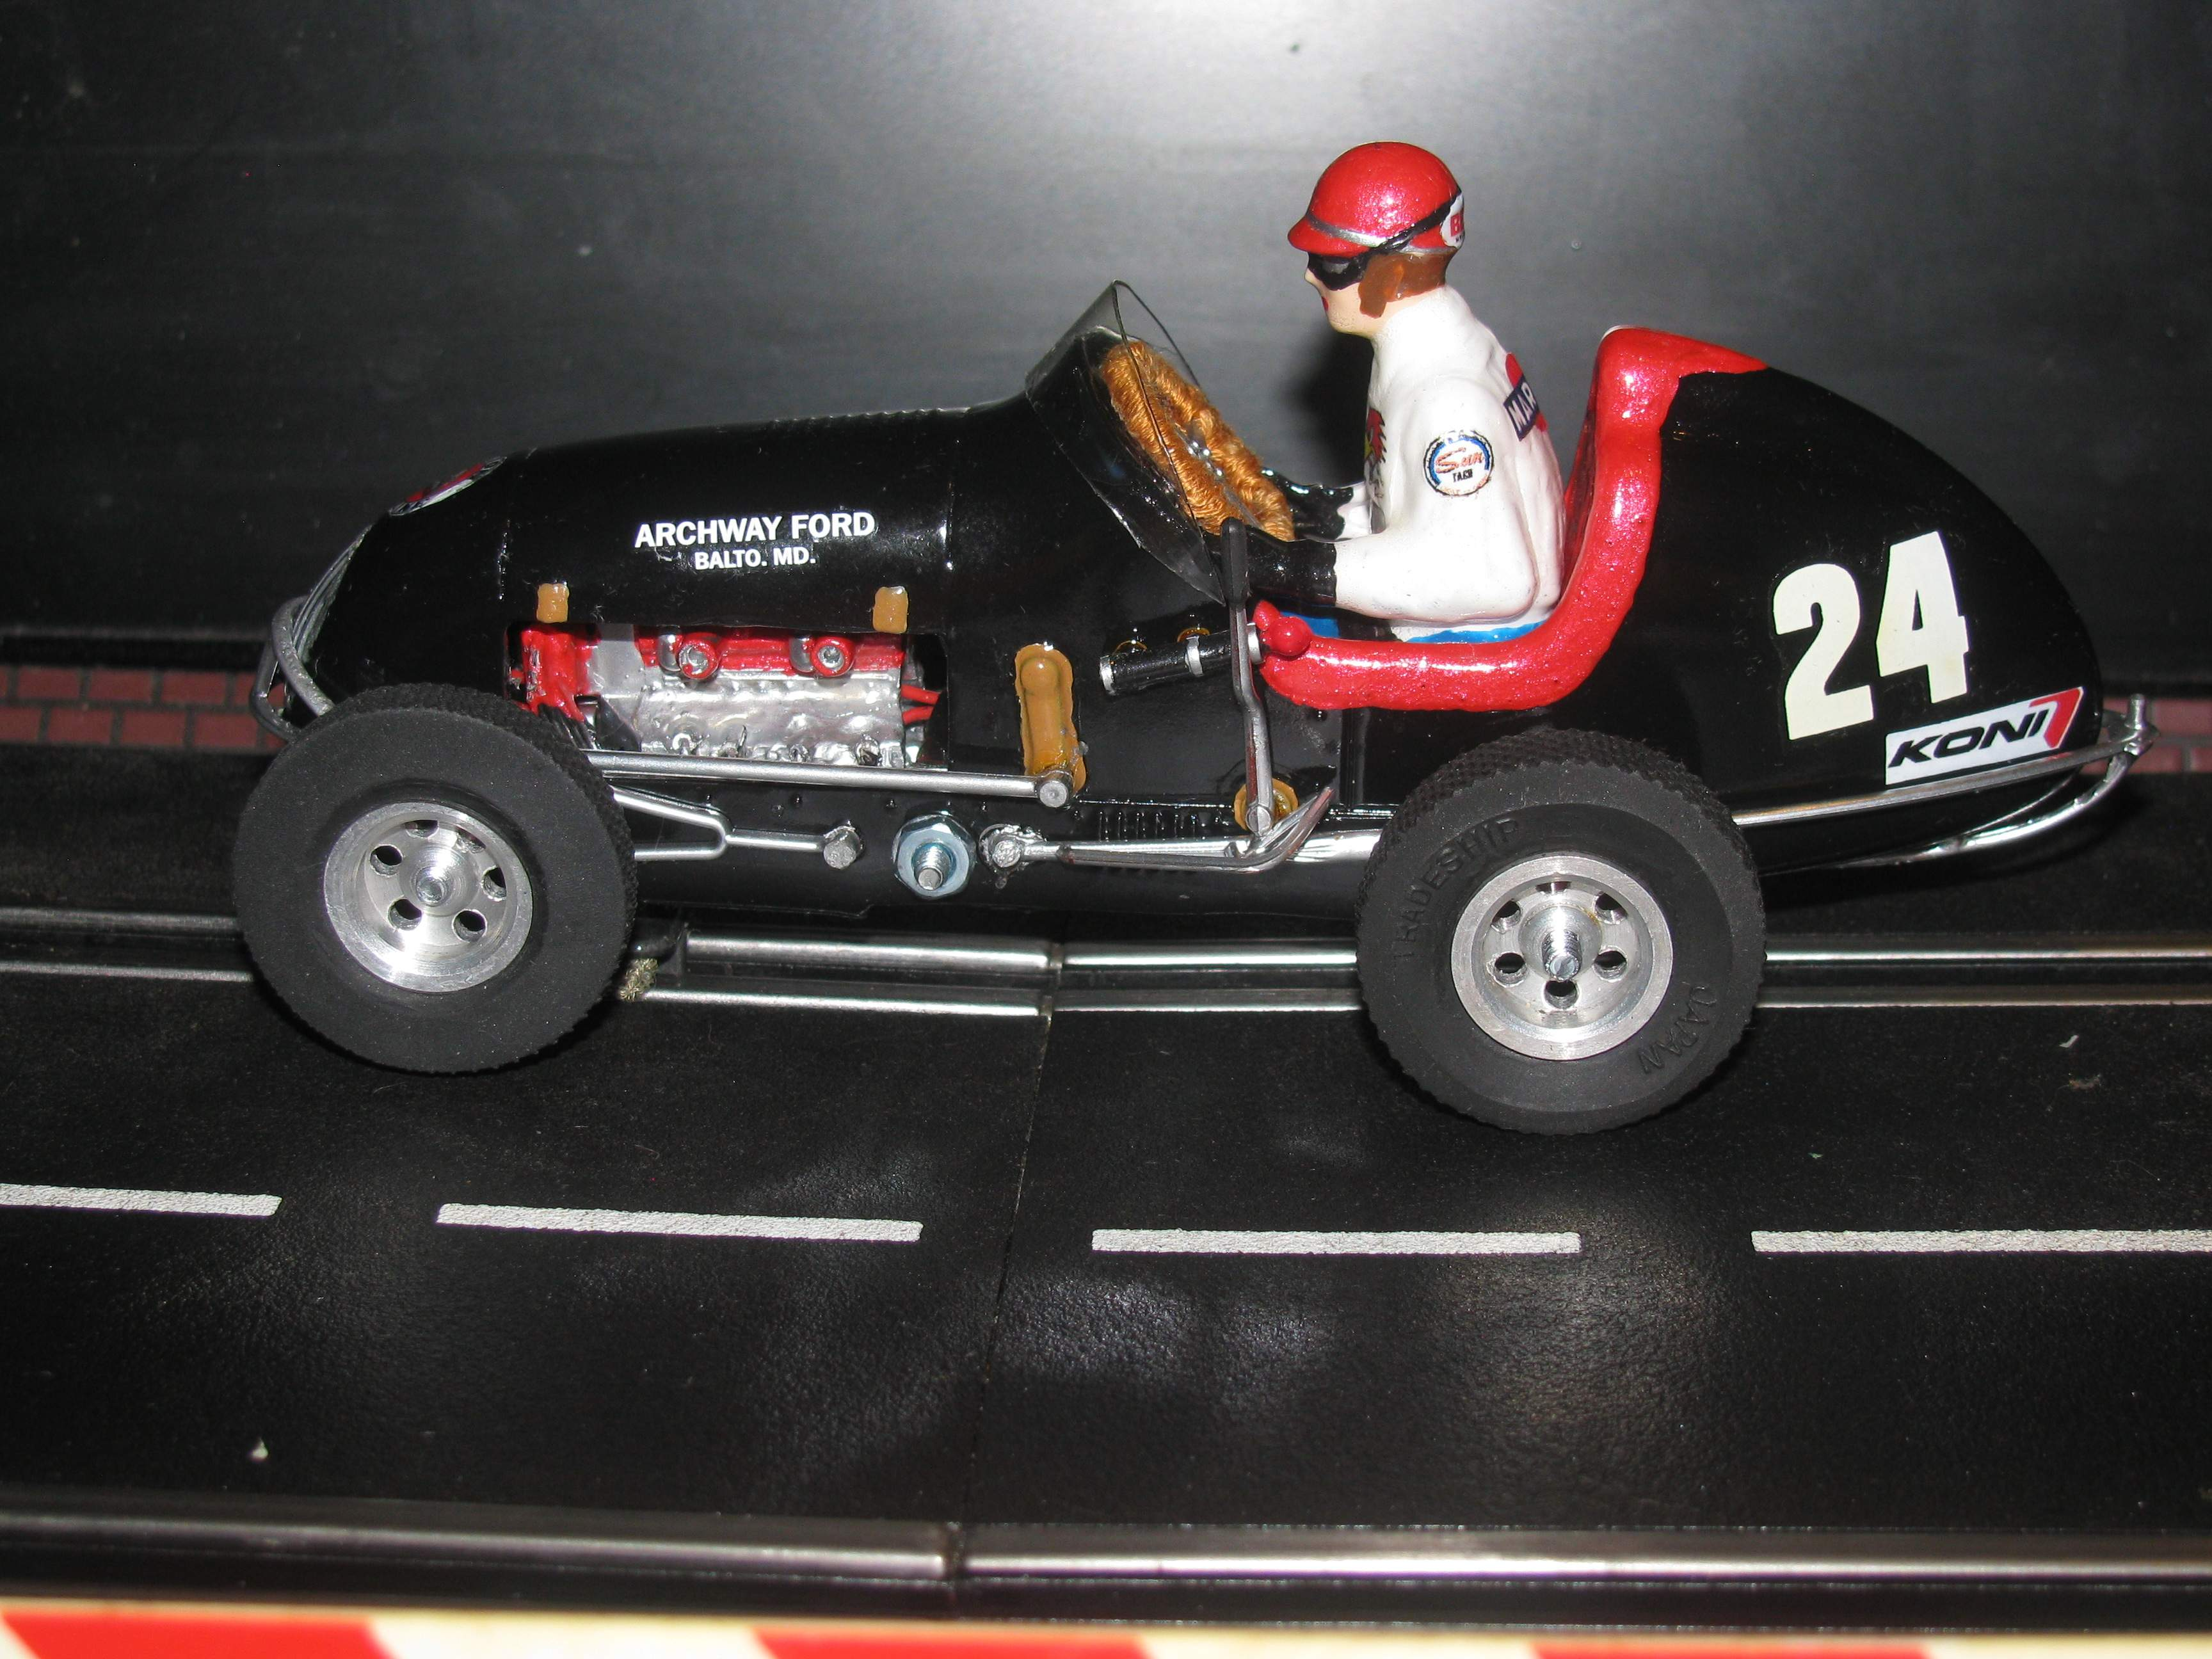 * SOLD * * SALE ENDS SUNDAY * Monogram Midget Racer Midnight Express MkII Racing Special Slot Car 24